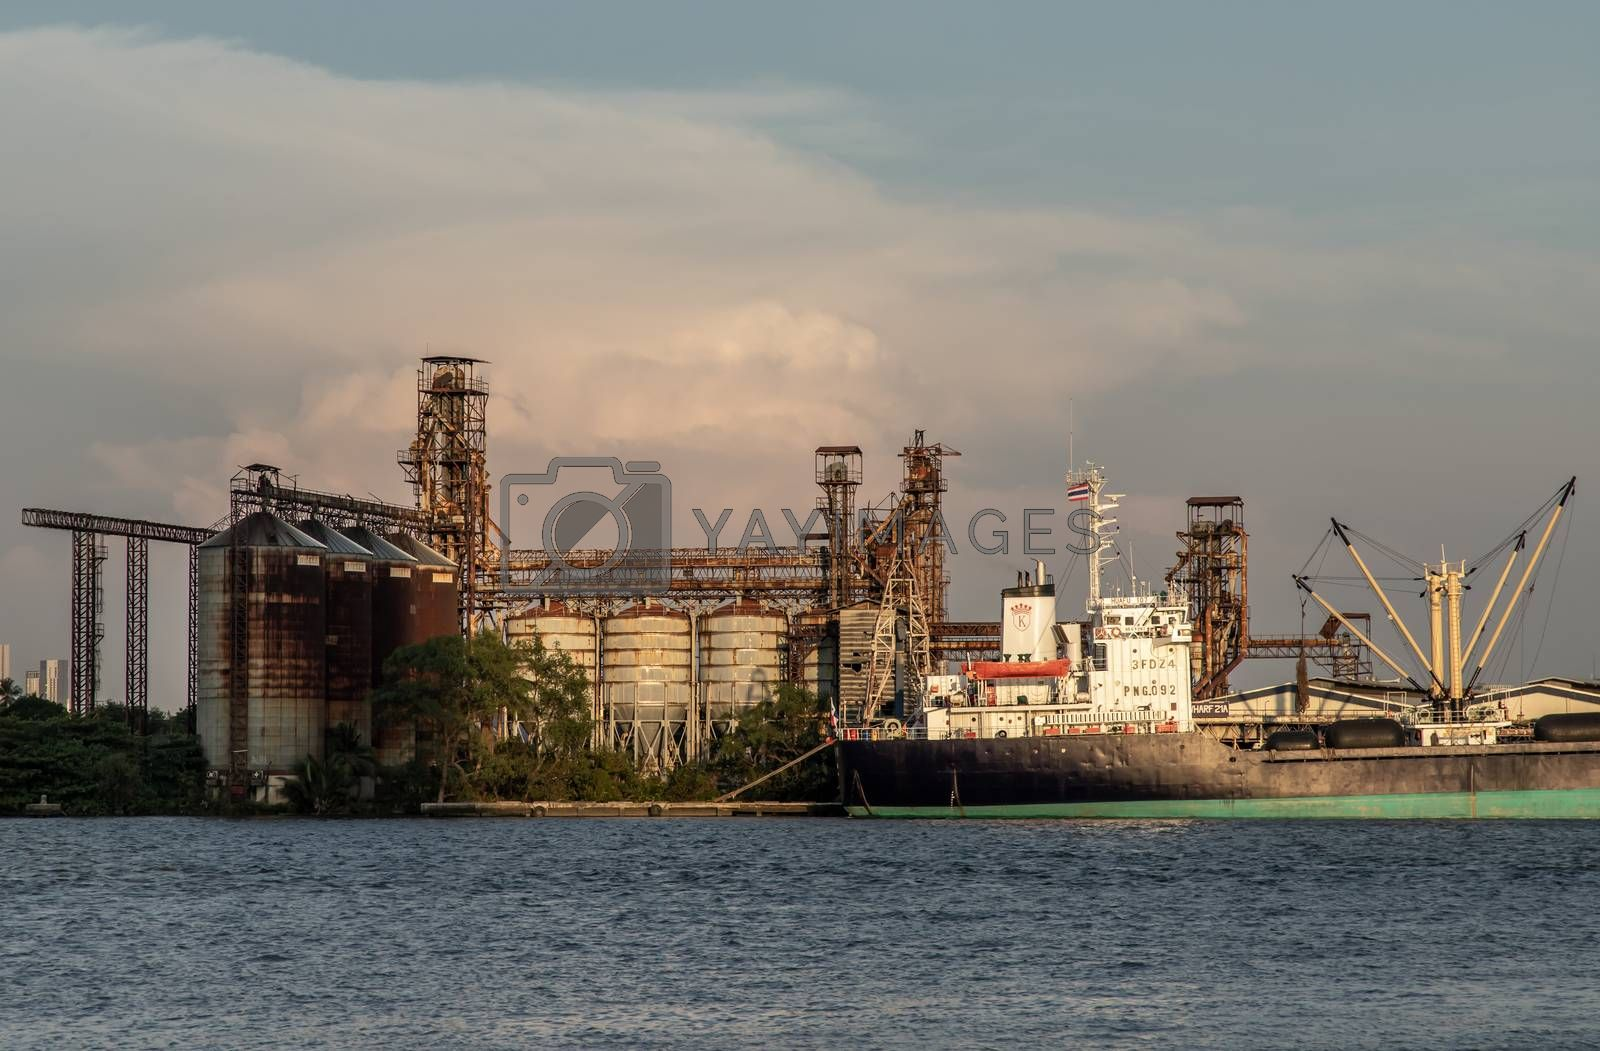 Bangkok, Thailand - 26 Mar 2020 : A petroleum refinery with storage tanks, distillation towers and other chemical synthesis and production equipment with the boat parking near riverside in bangkok.